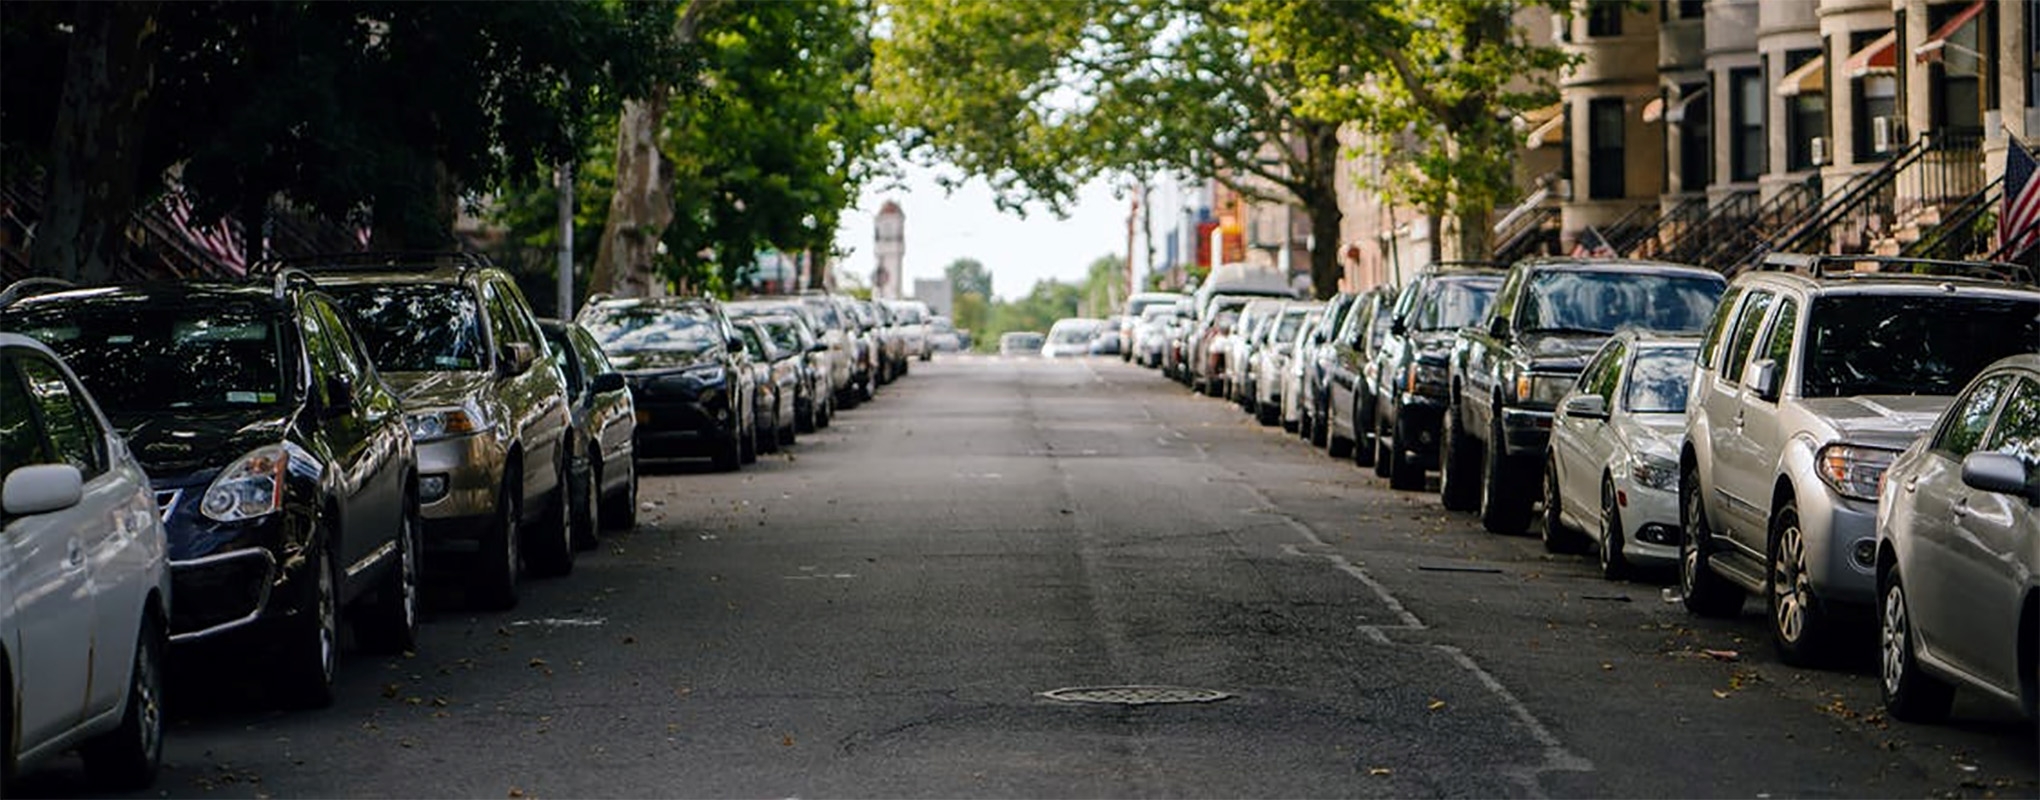 Street with parked cars